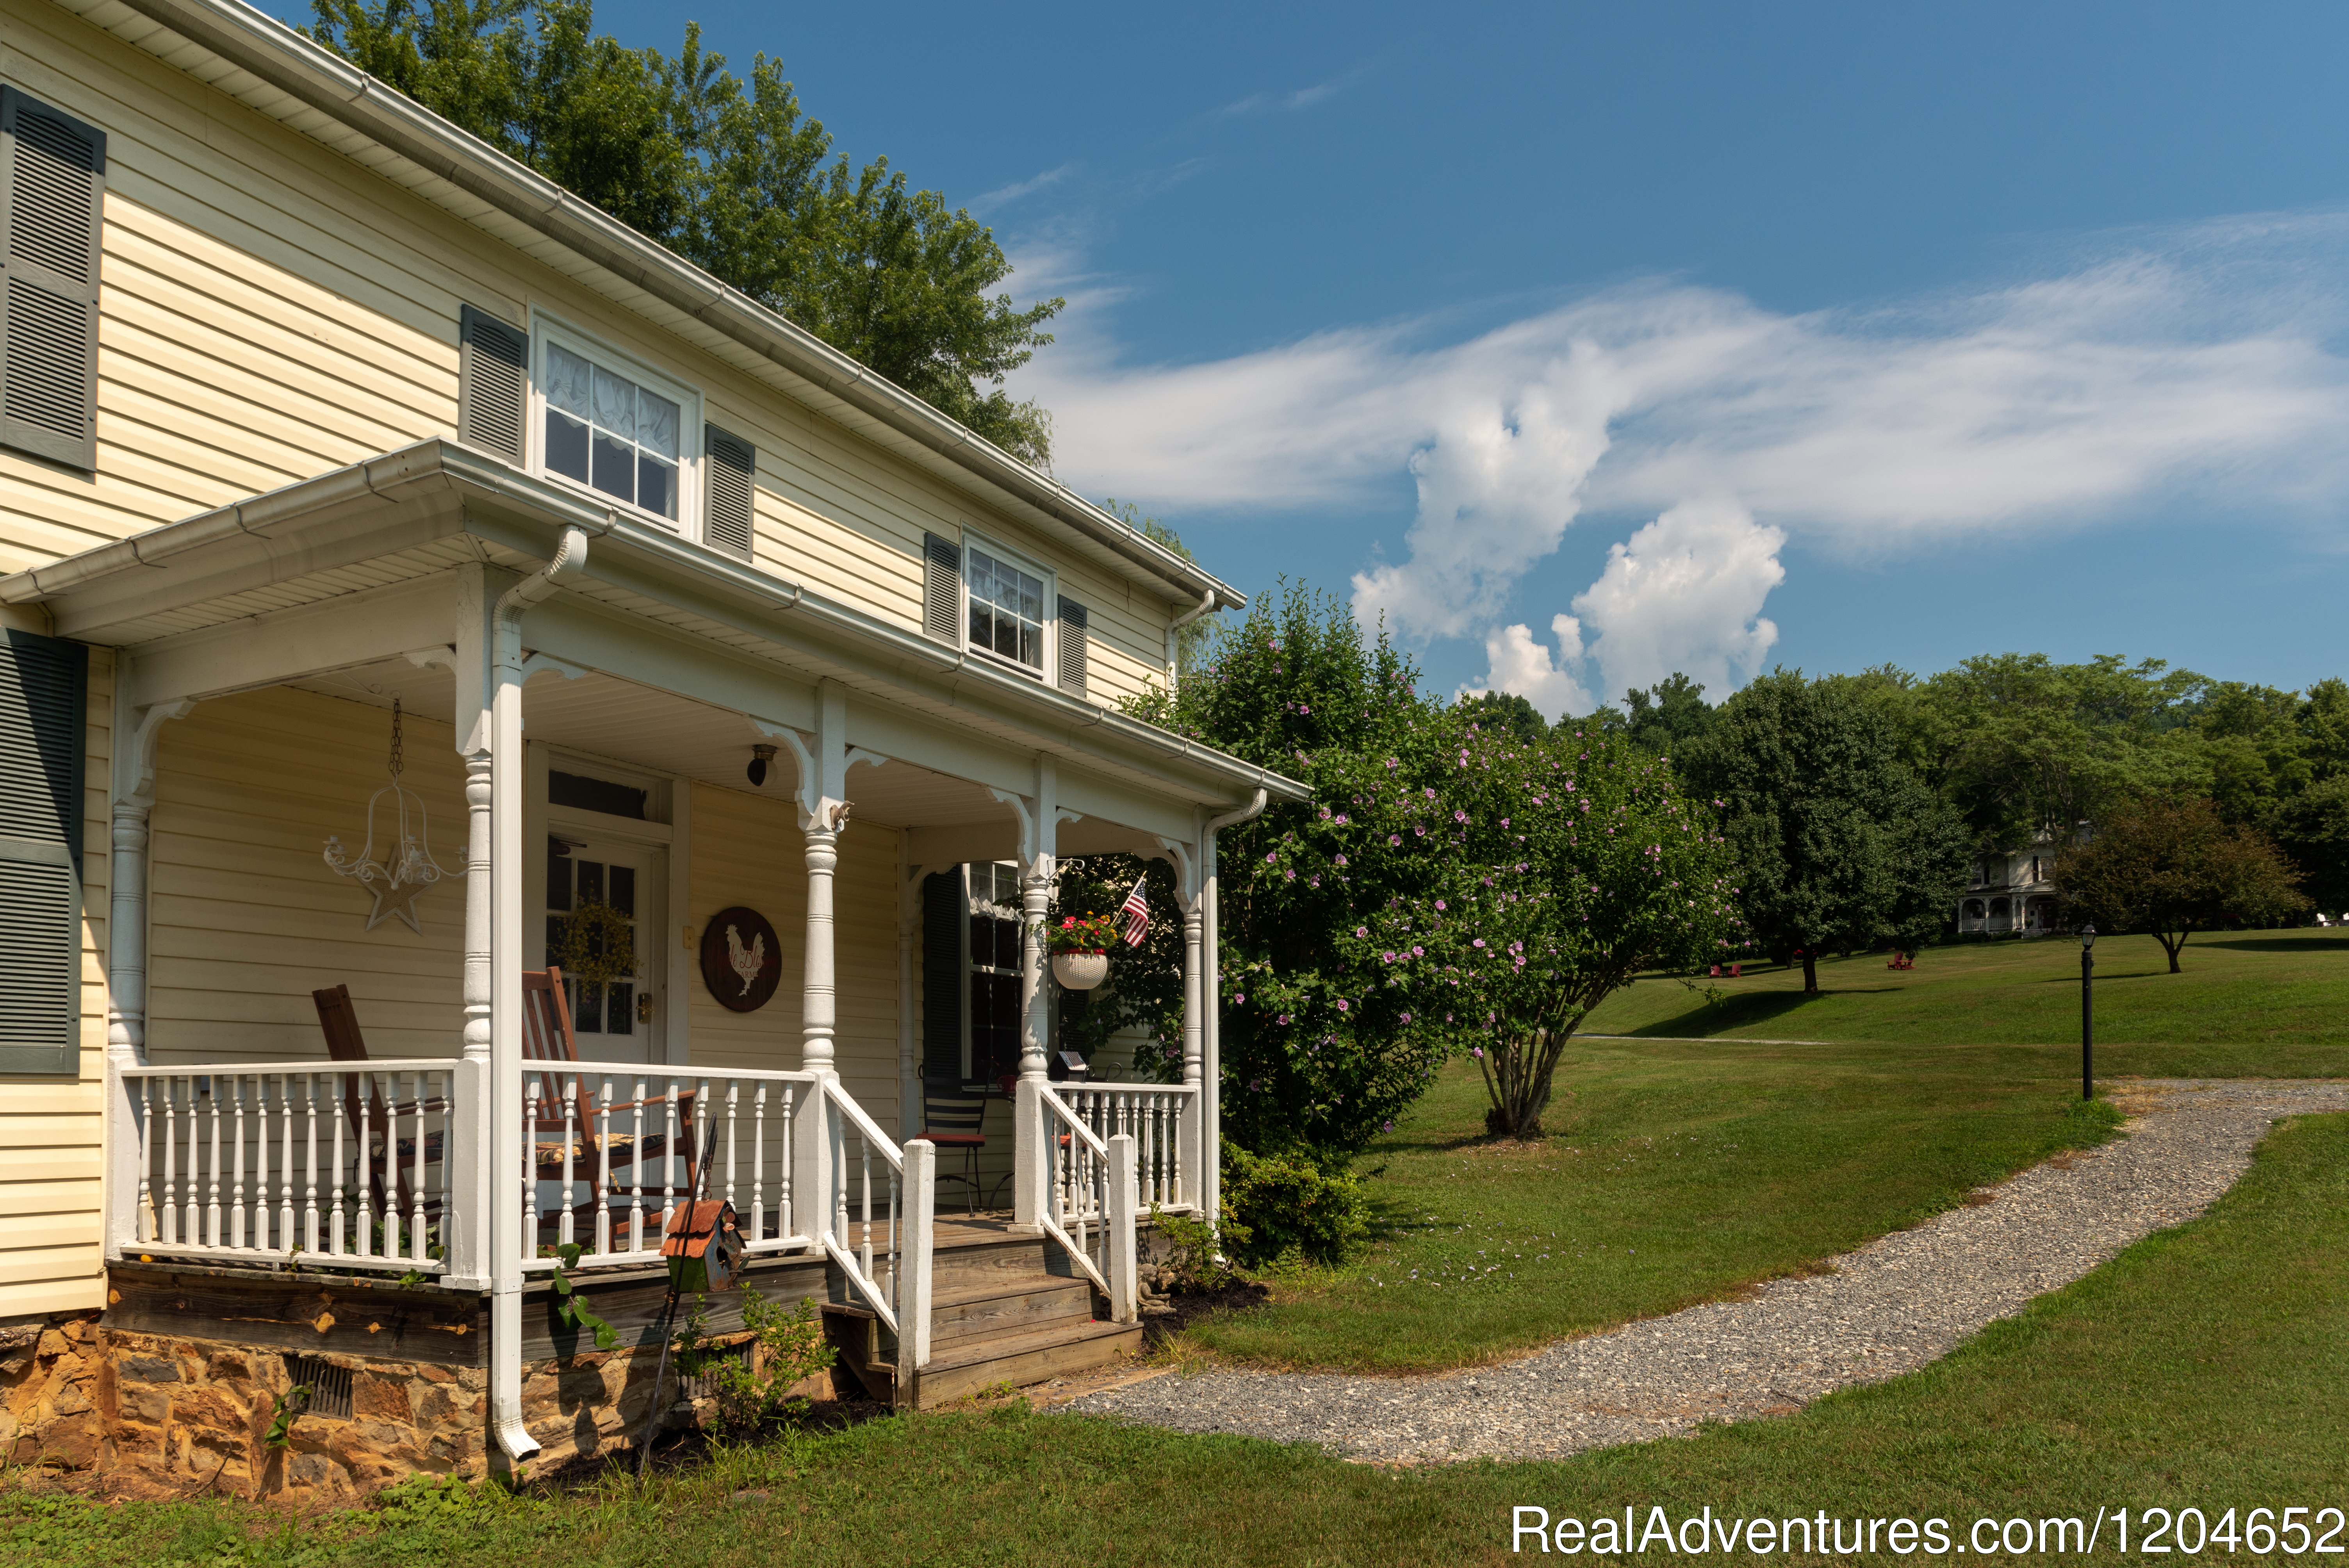 Orchard House Bed and Breakfast Farmhouse